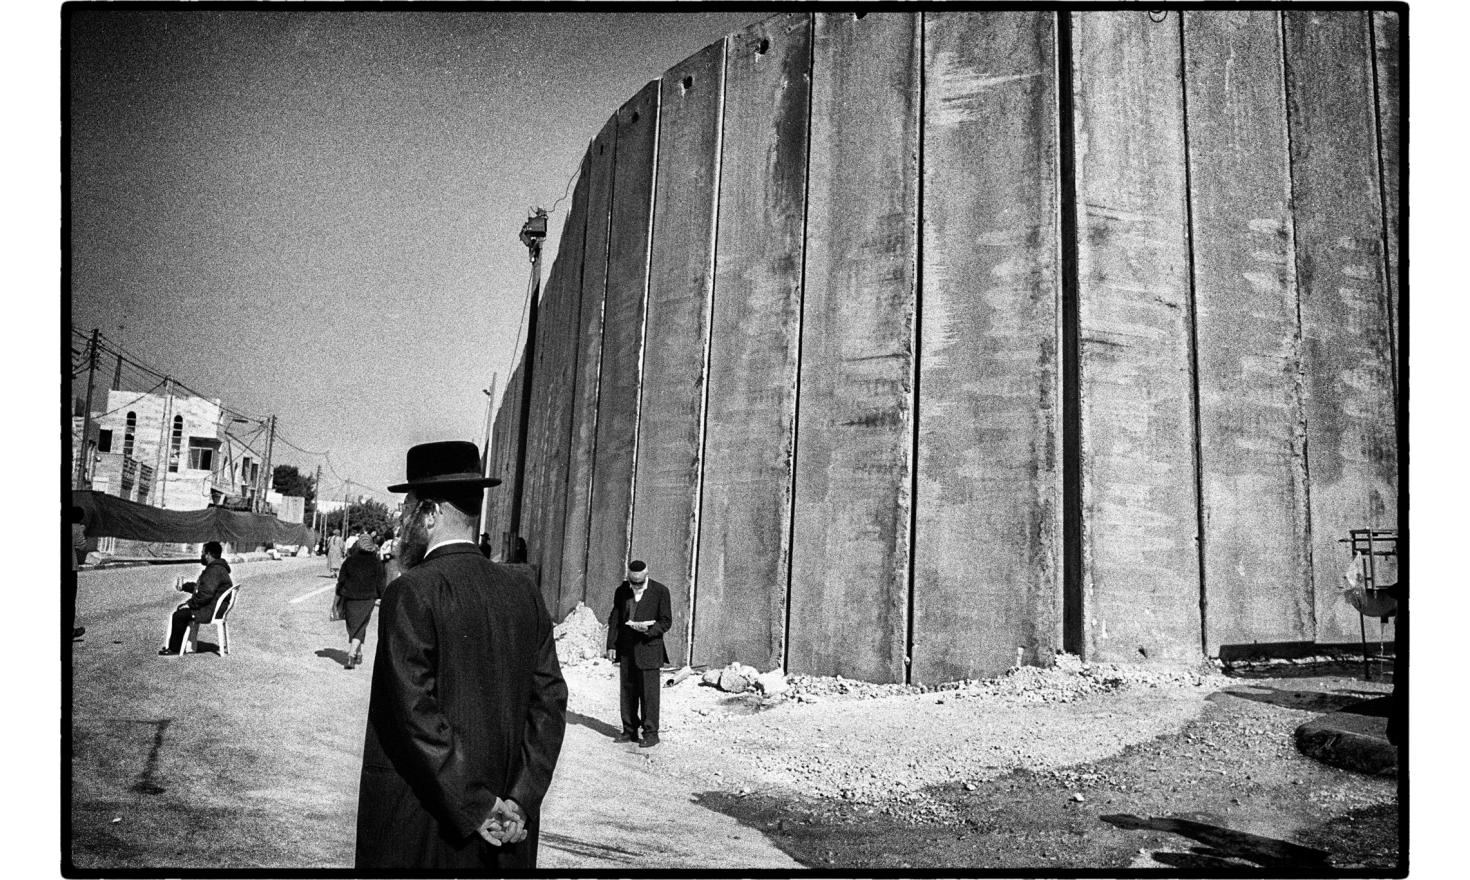 The wall stands by Rachel's Tomb, a holy site of great importance in Judaism. Located next to the city of Bethlehem, in the West Bank today. This is the place where, according to tradition, was buried Rachel, Jacob's wife.November 2005.